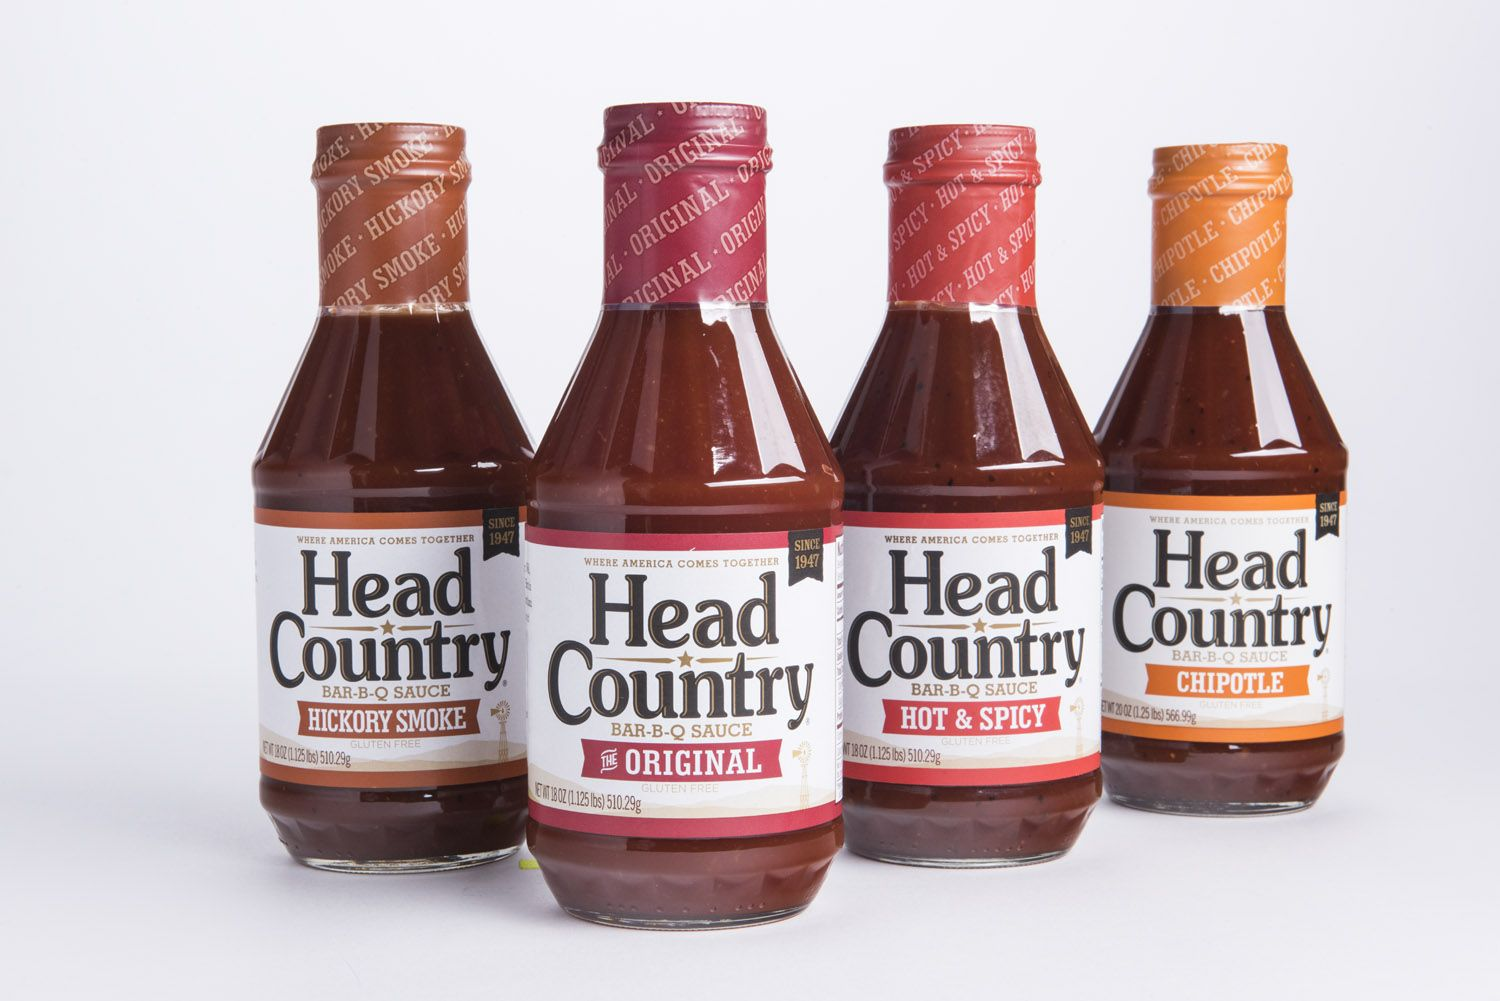 Original, Hickory Smoke, Hot & Spicy, and Chipotle ... This is Head Country. #headcountrybbq #bbq #grilling